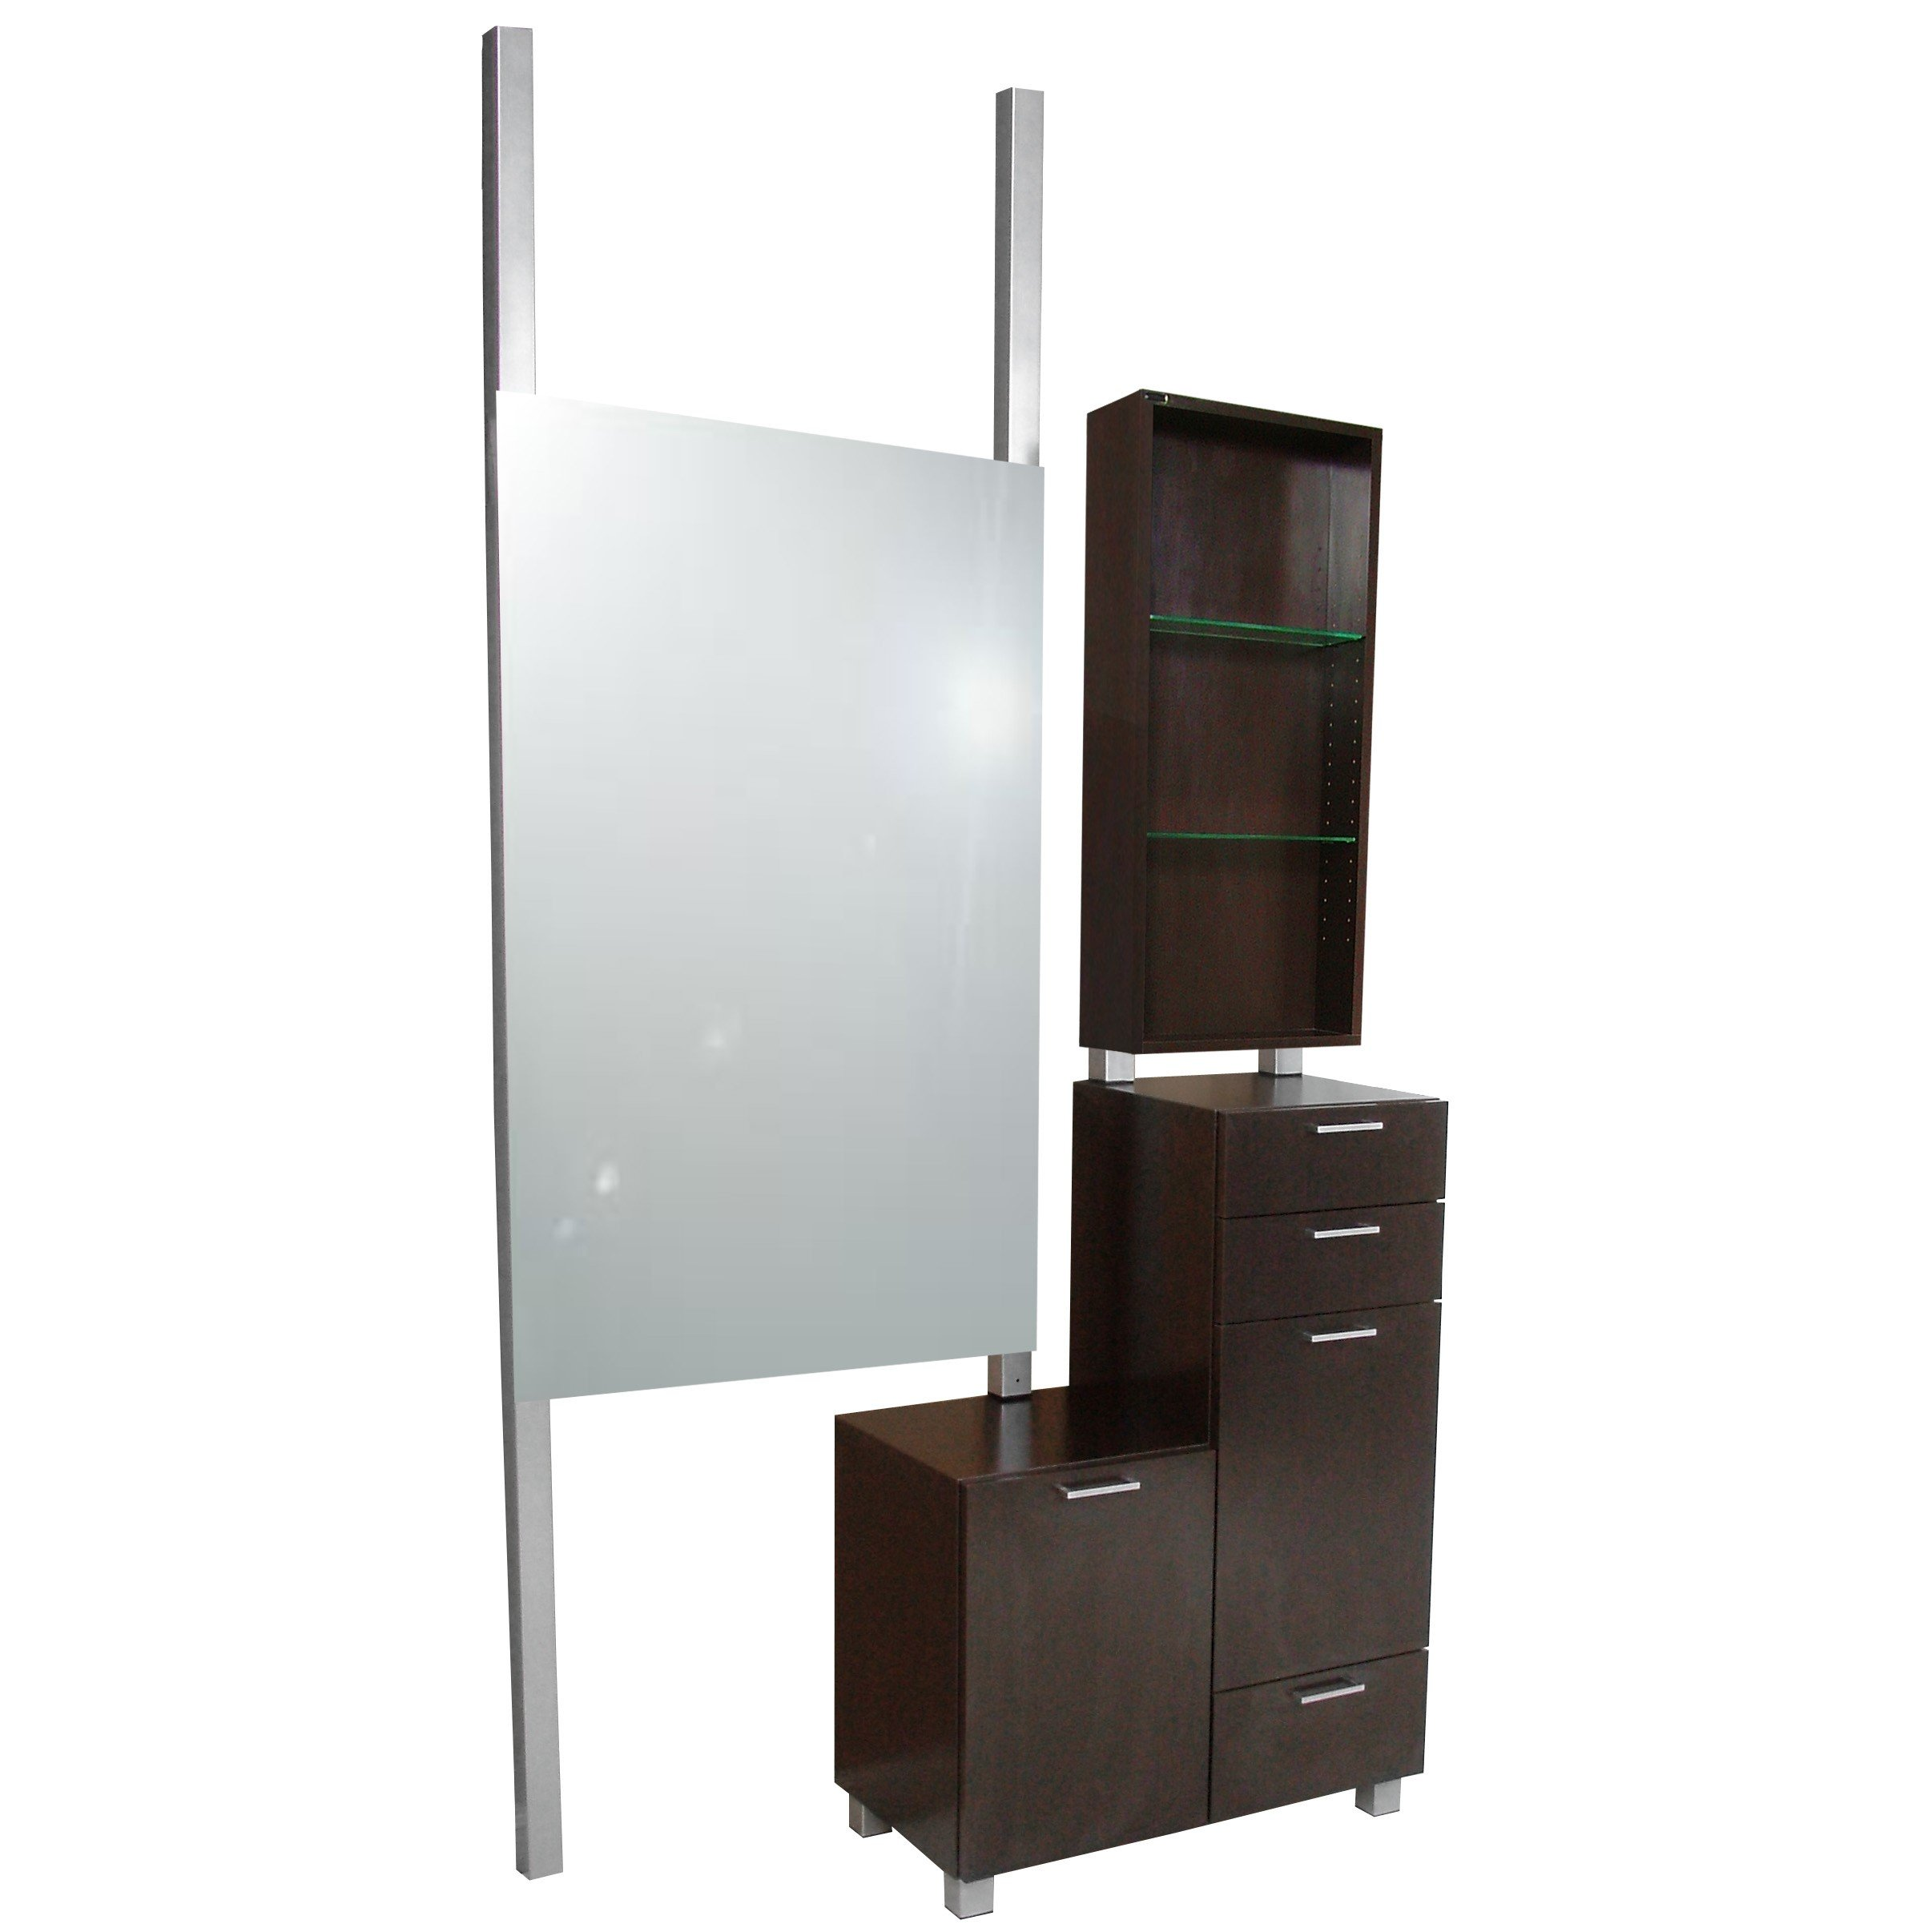 938-48 Amati Bi-Level Styling Vanity with Retail